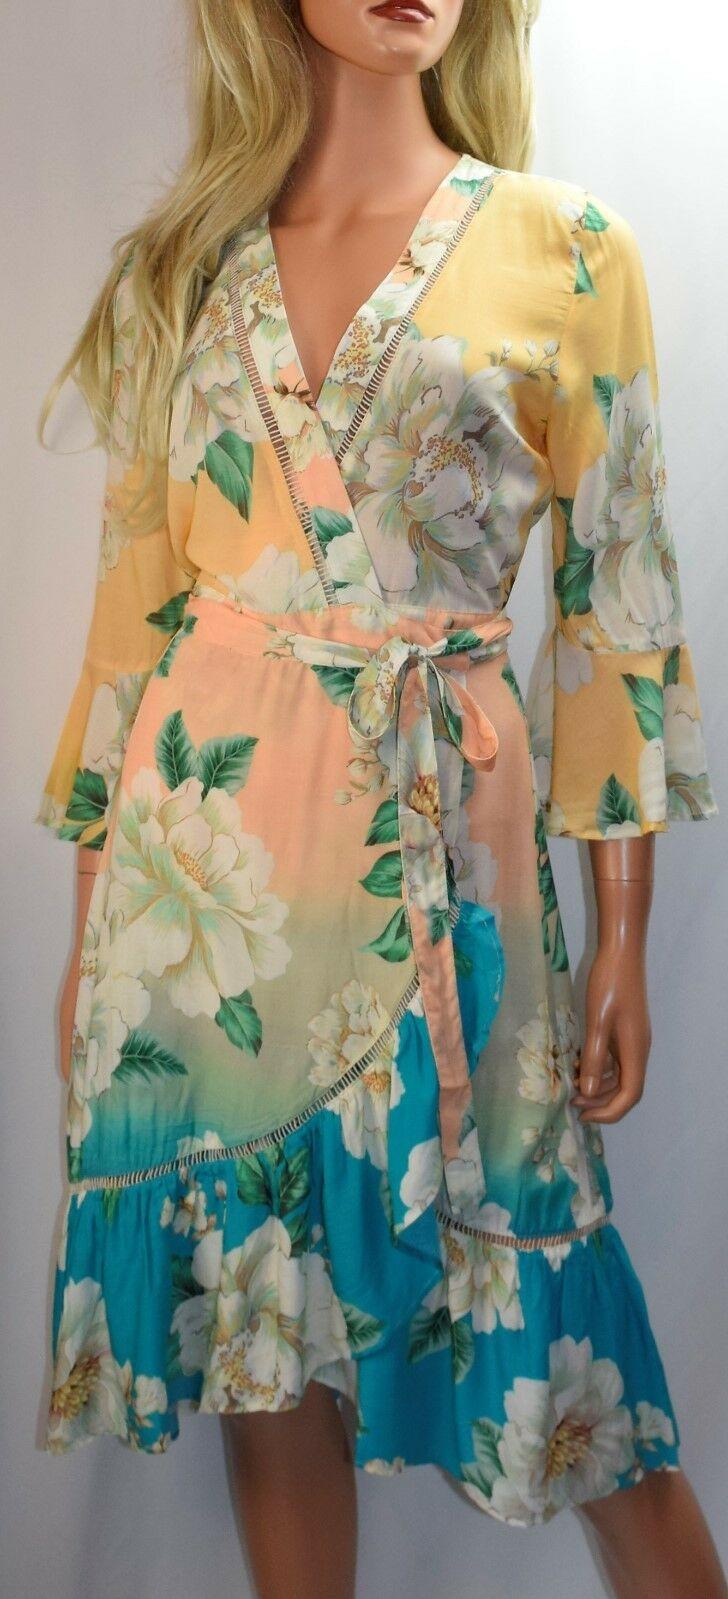 NWT FARM RIO Sunset Wrap Dress Size X Small